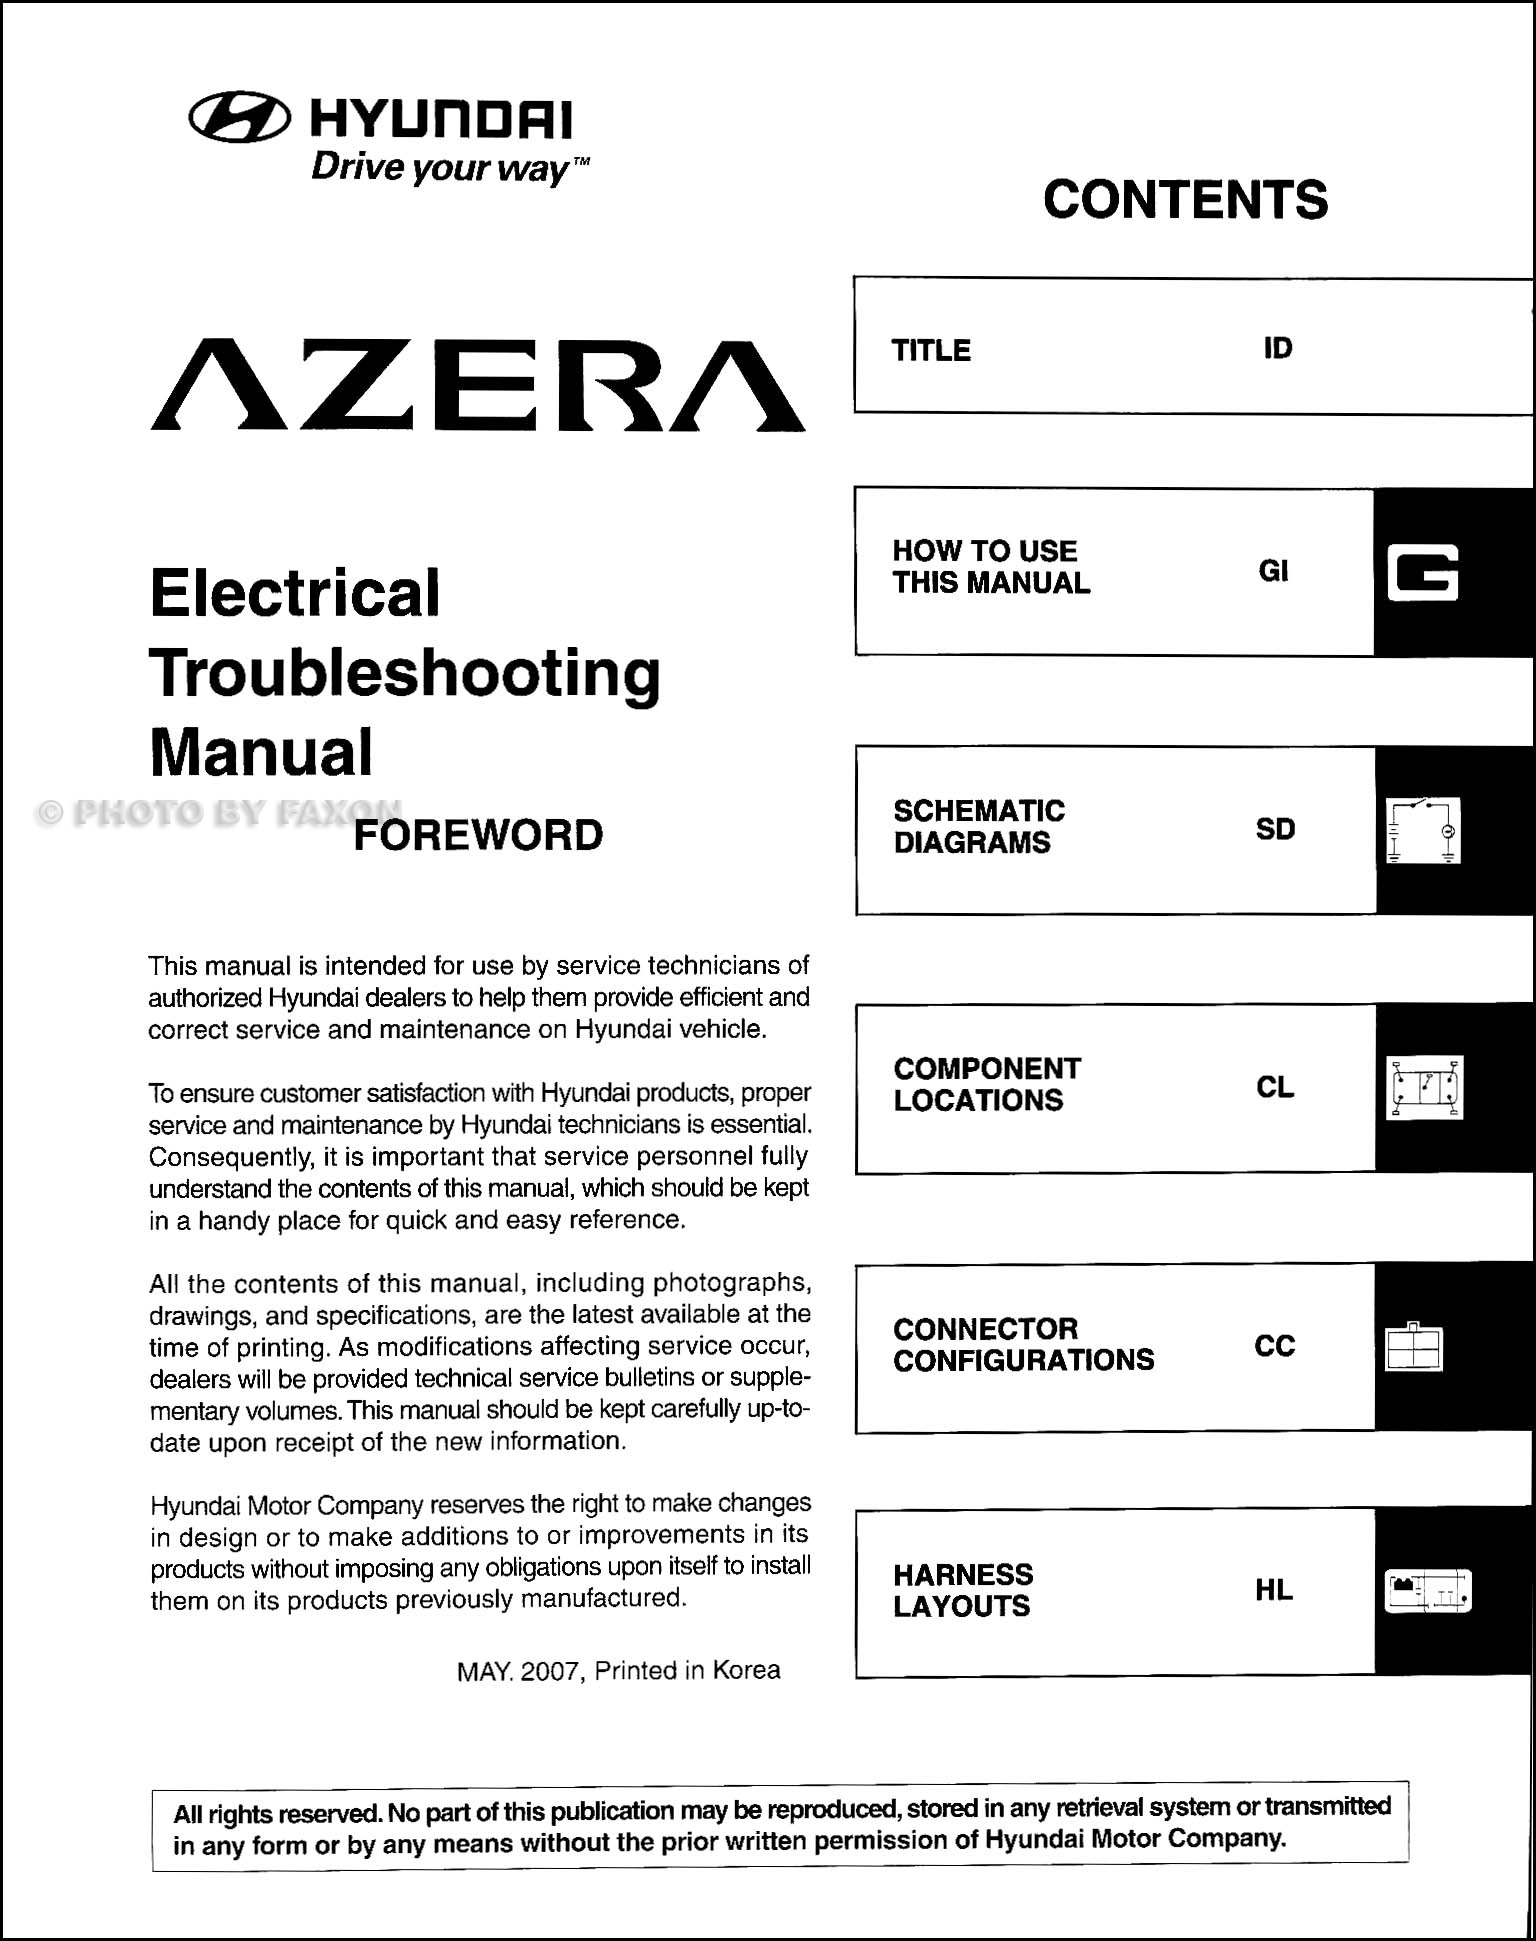 Hyundai Azera Wiring Diagrams Manual Of Diagram 2011 Sonata Headlight 2008 Electrical Troubleshooting Original Rh Faxonautoliterature Com